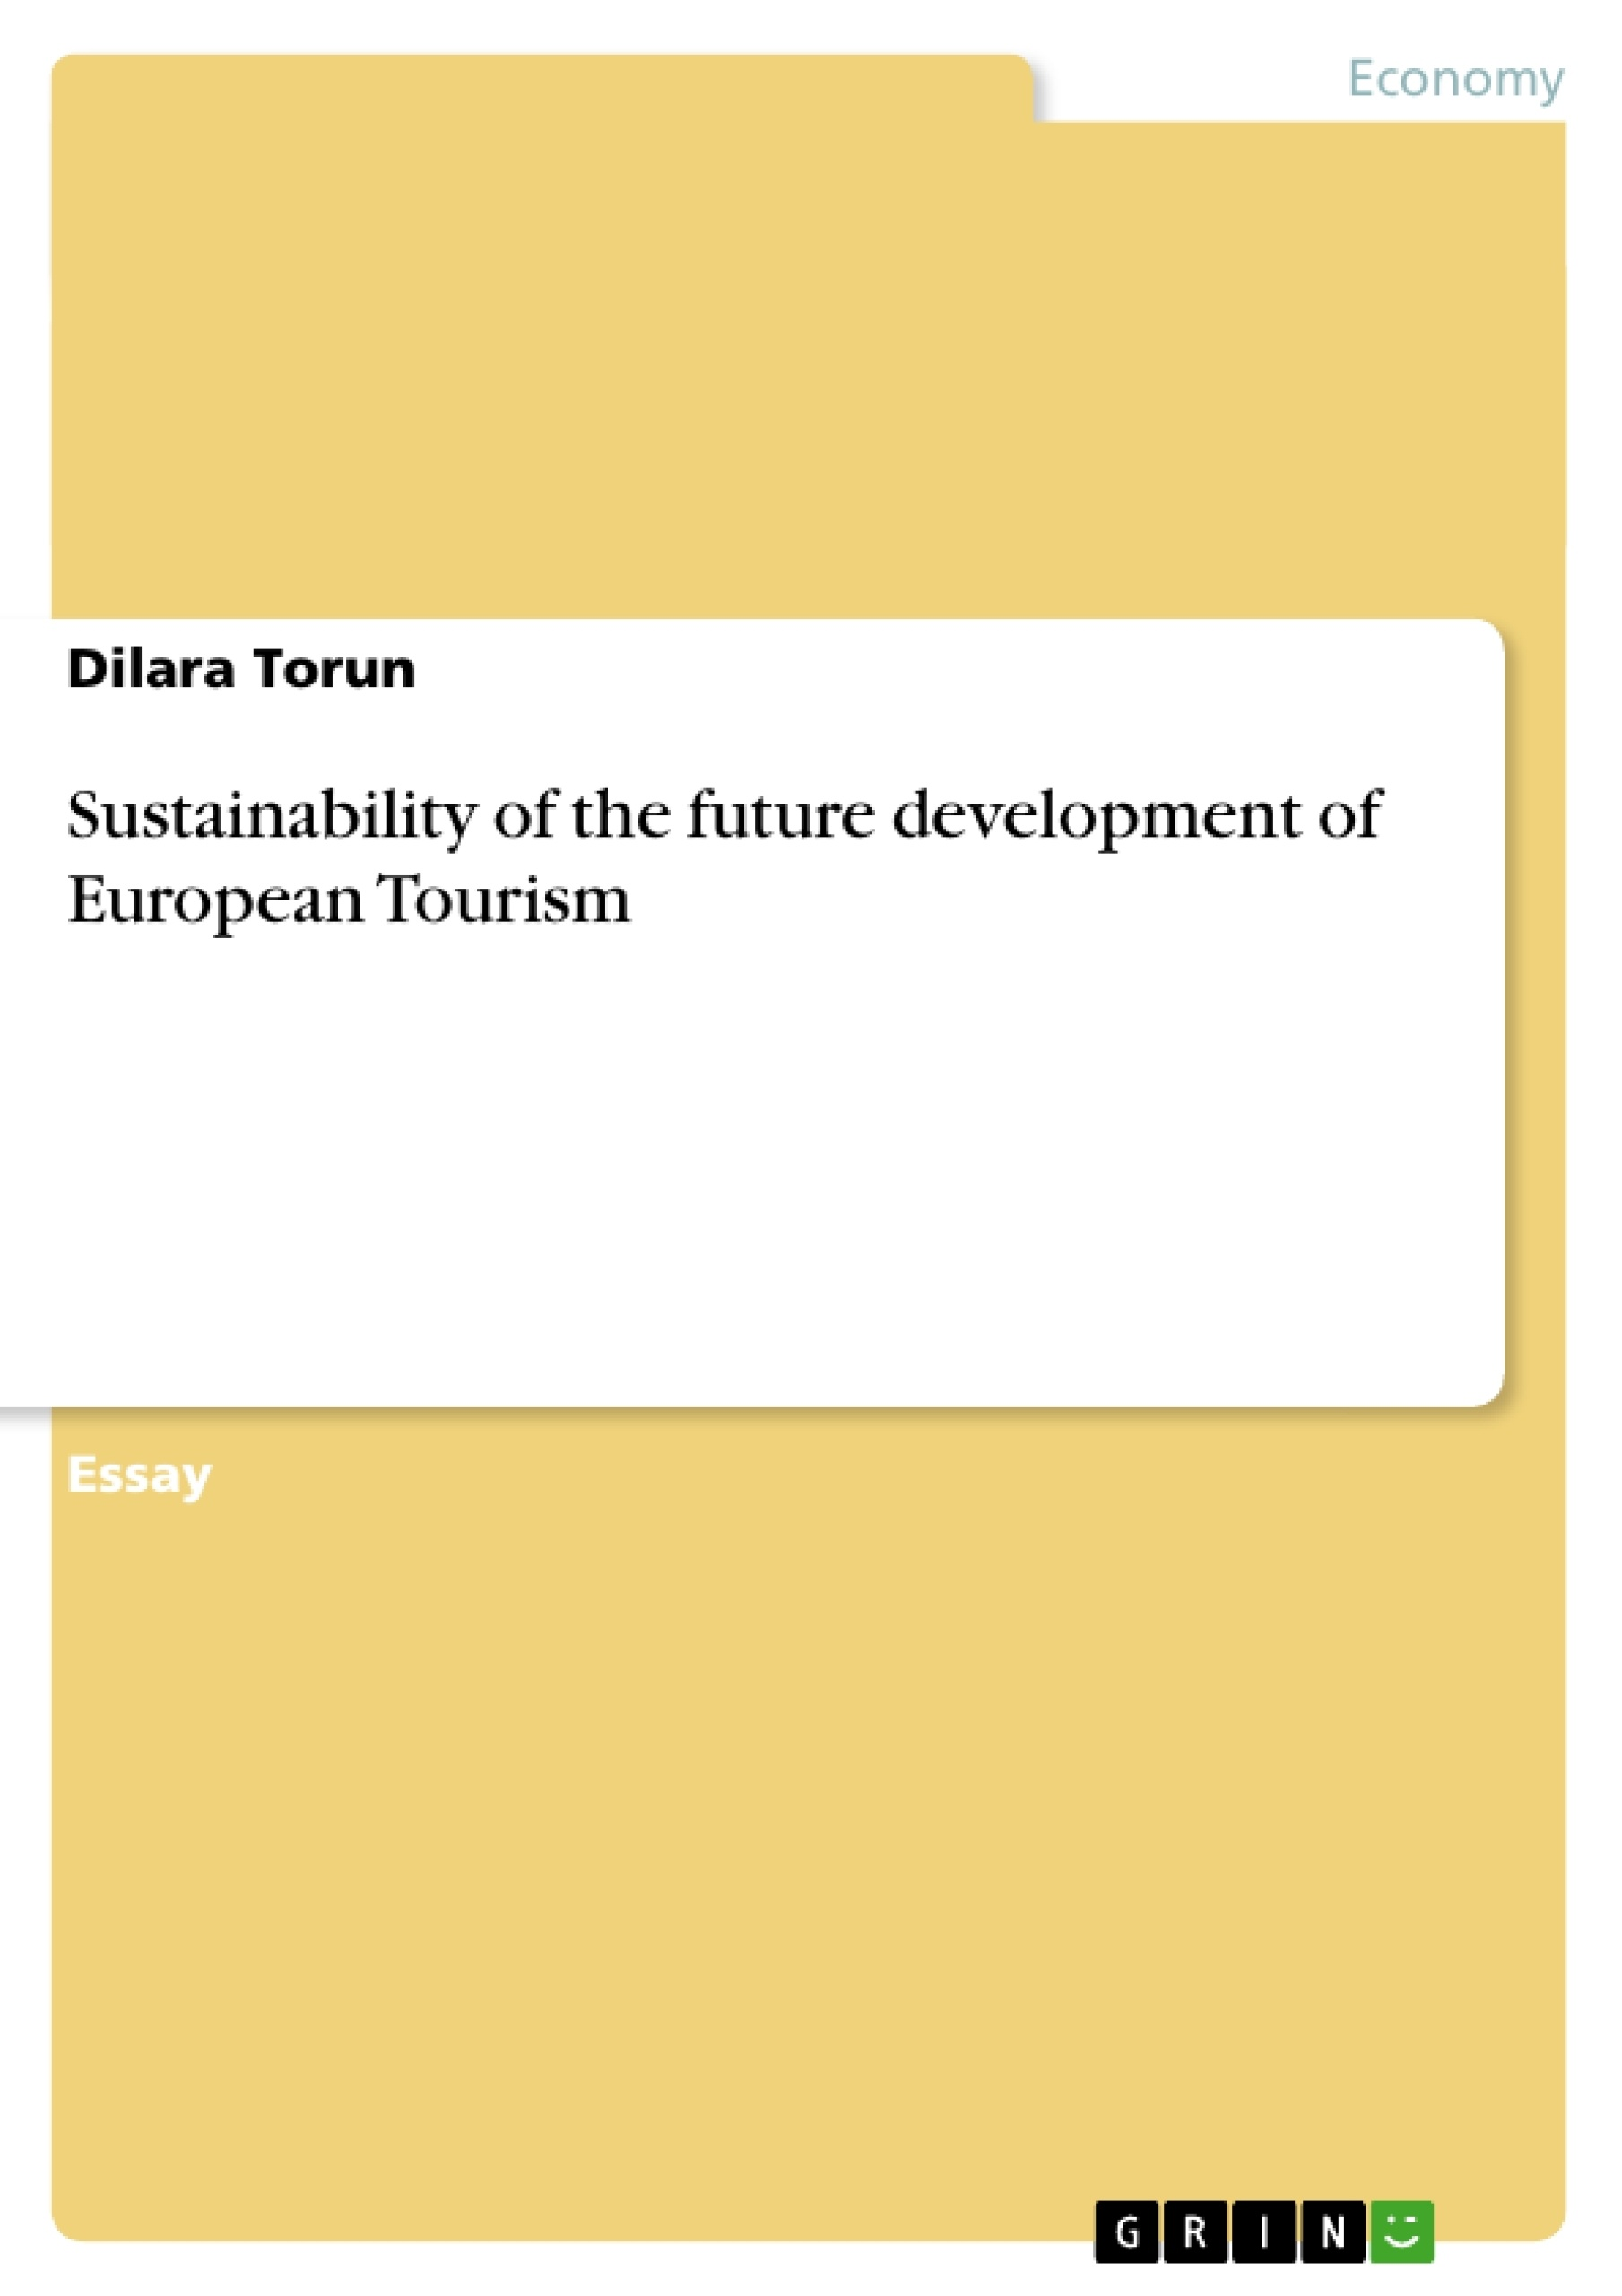 Title: Sustainability of the future development of European Tourism